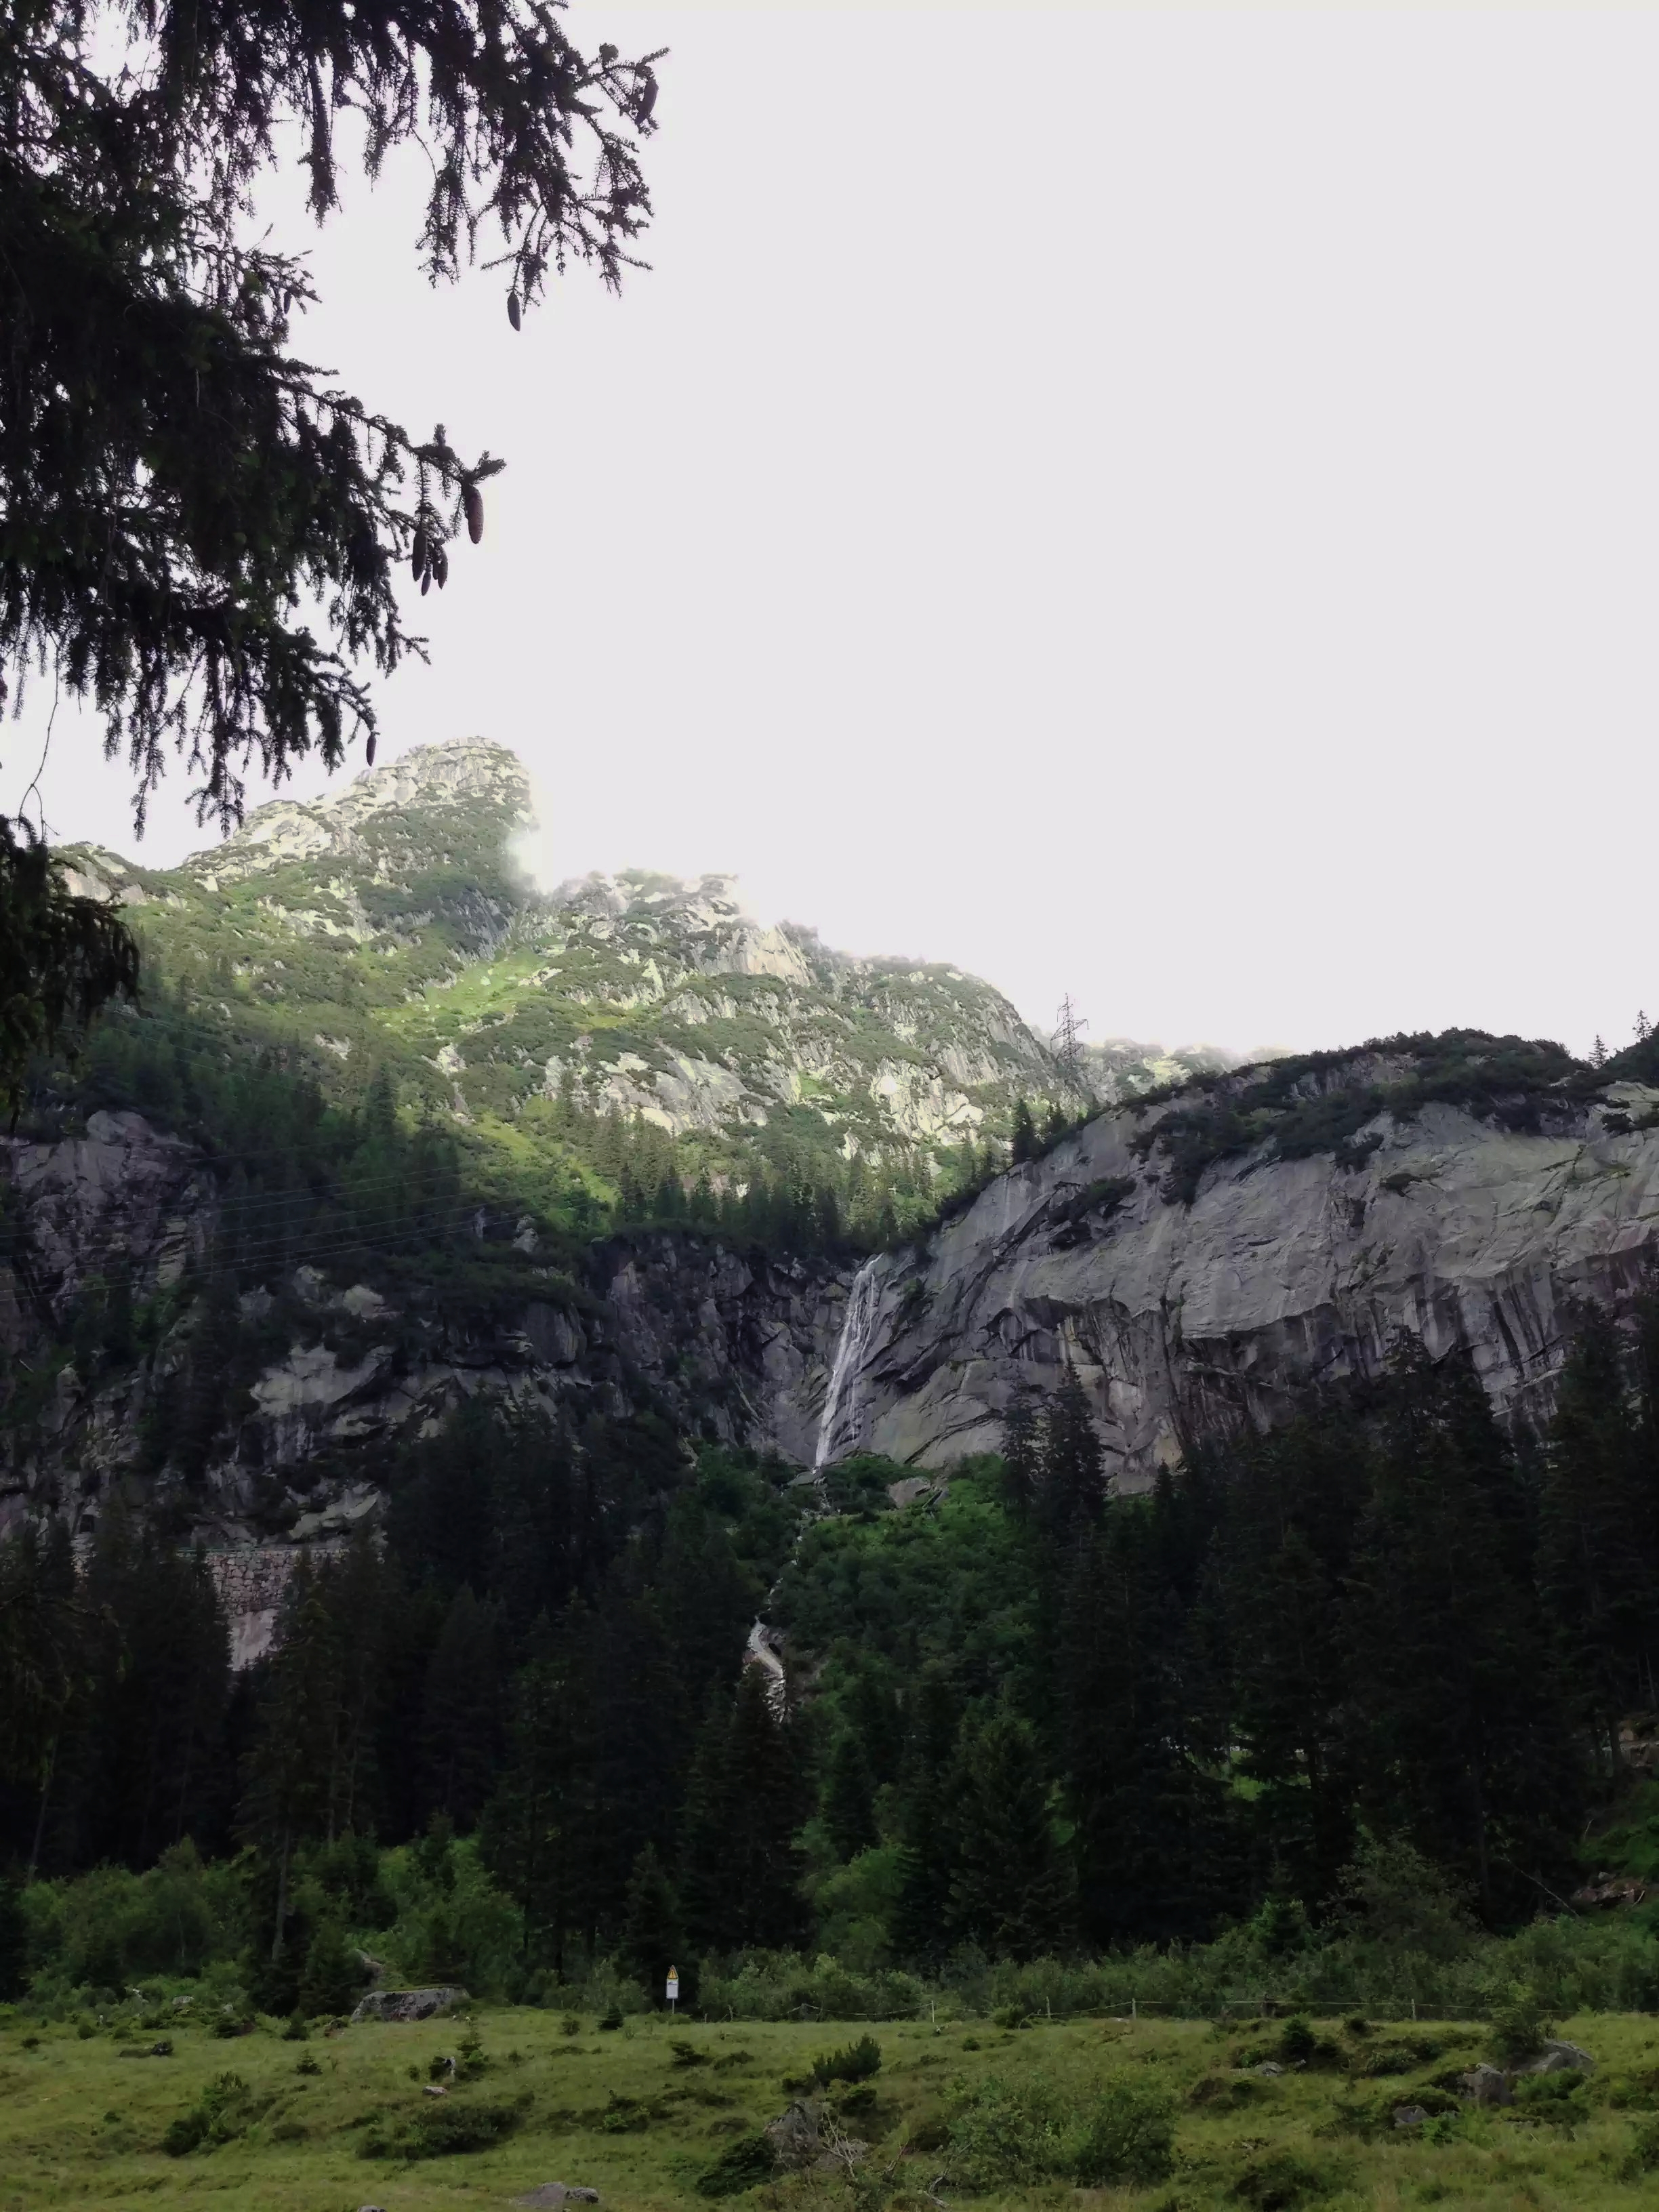 View from the base of a canyoning tour